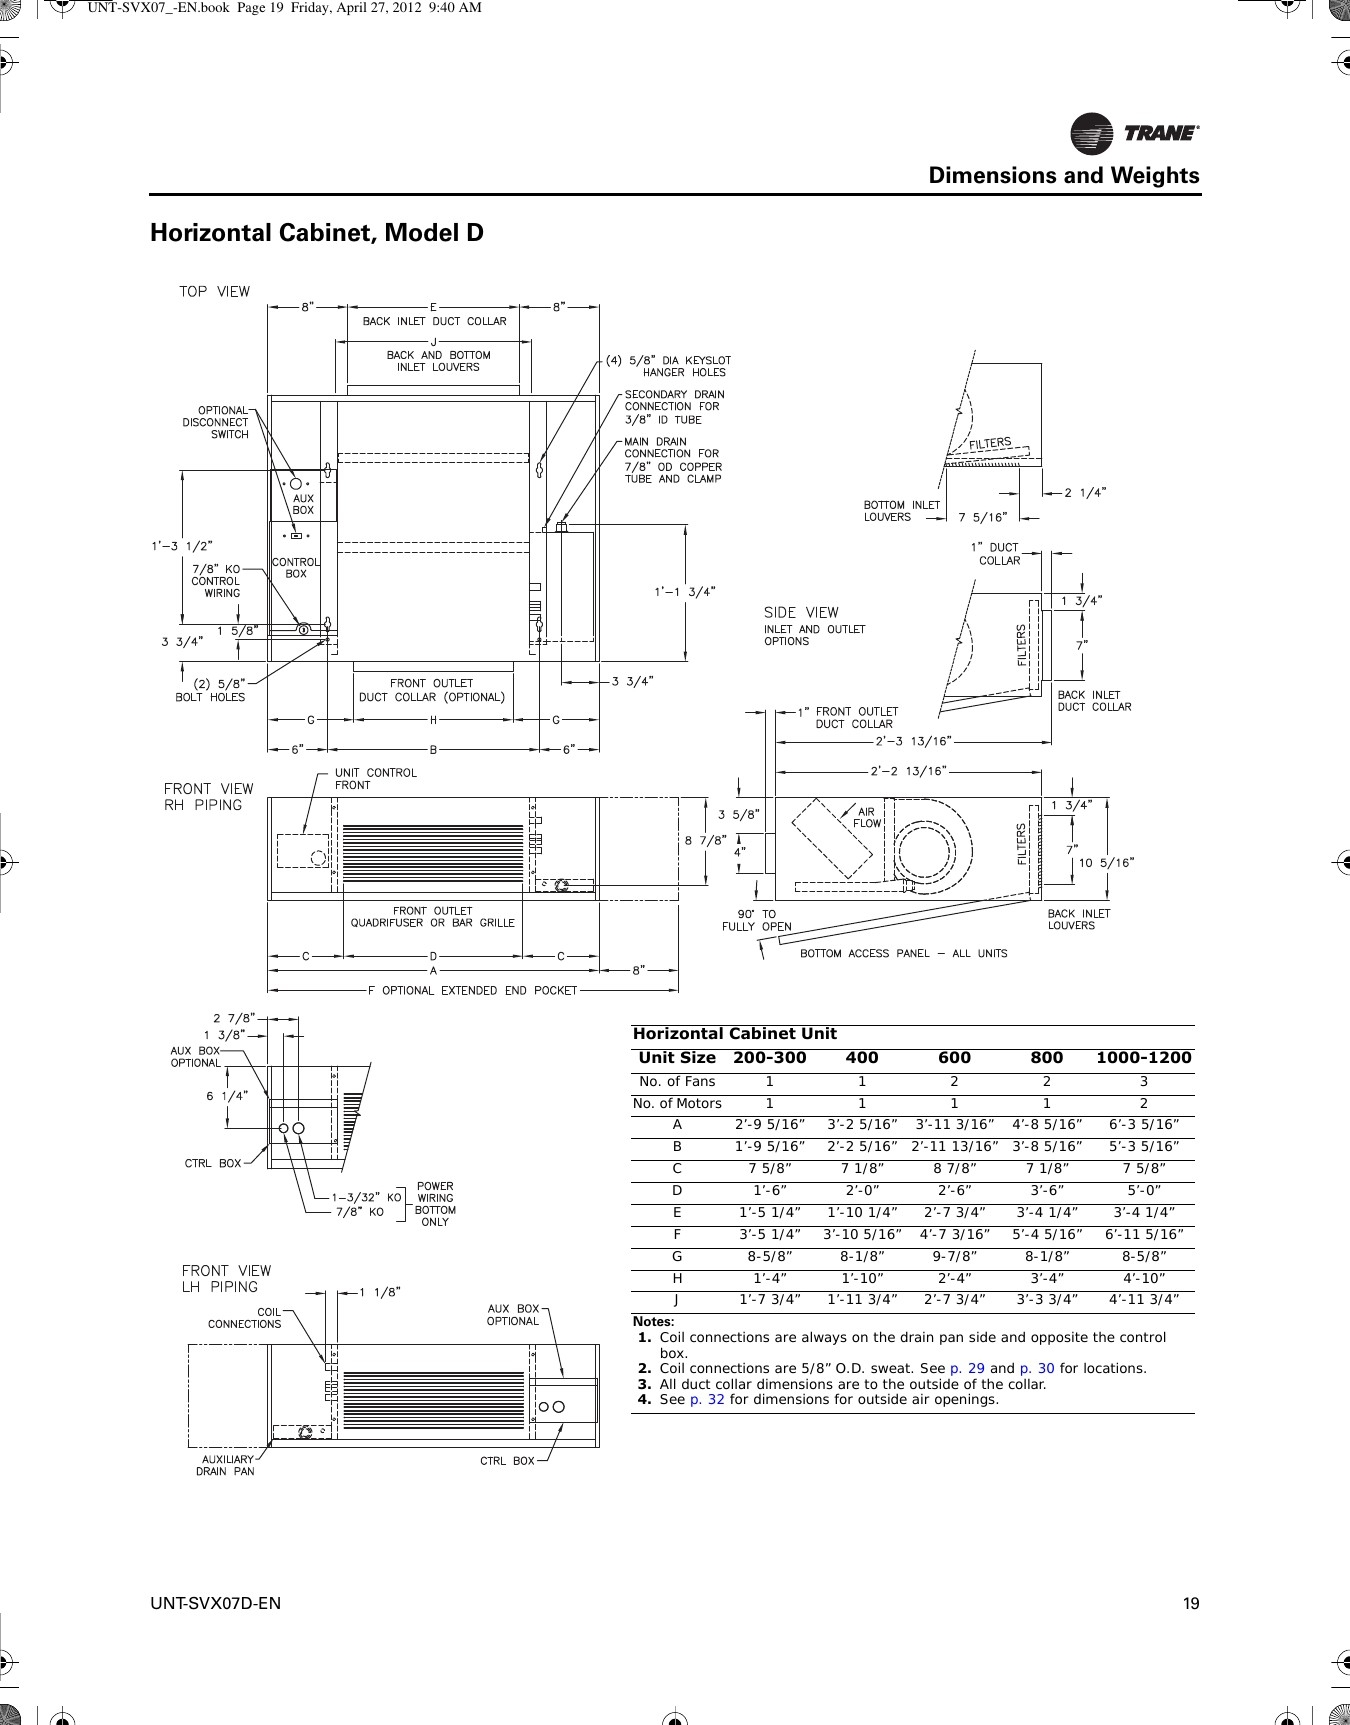 dometic comfort control center 2 wiring diagram | free ... dometic thermostat wiring diagram 7 wire